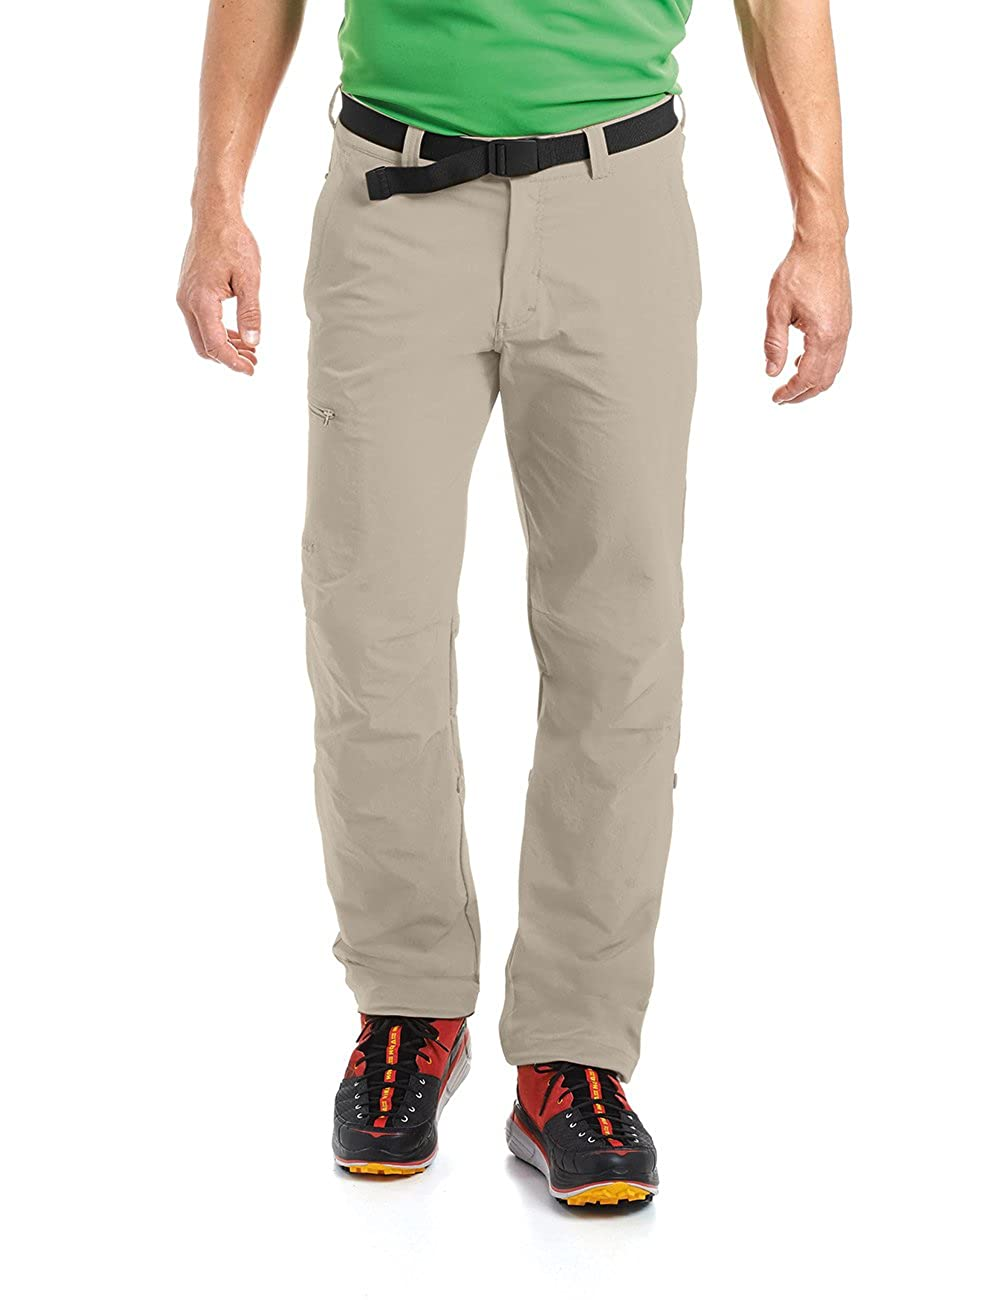 Tiramisu 110 maier sports Nil Men's Walking Trousers